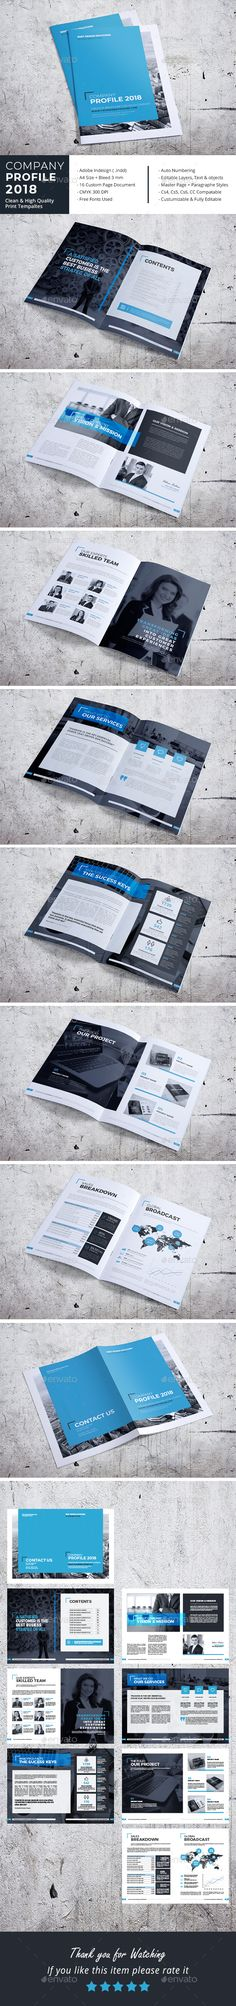 Company Profile 2018 — InDesign INDD #us letter #magazine • Download ➝ https://graphicriver.net/item/company-profile-2018/21176842?ref=pxcr